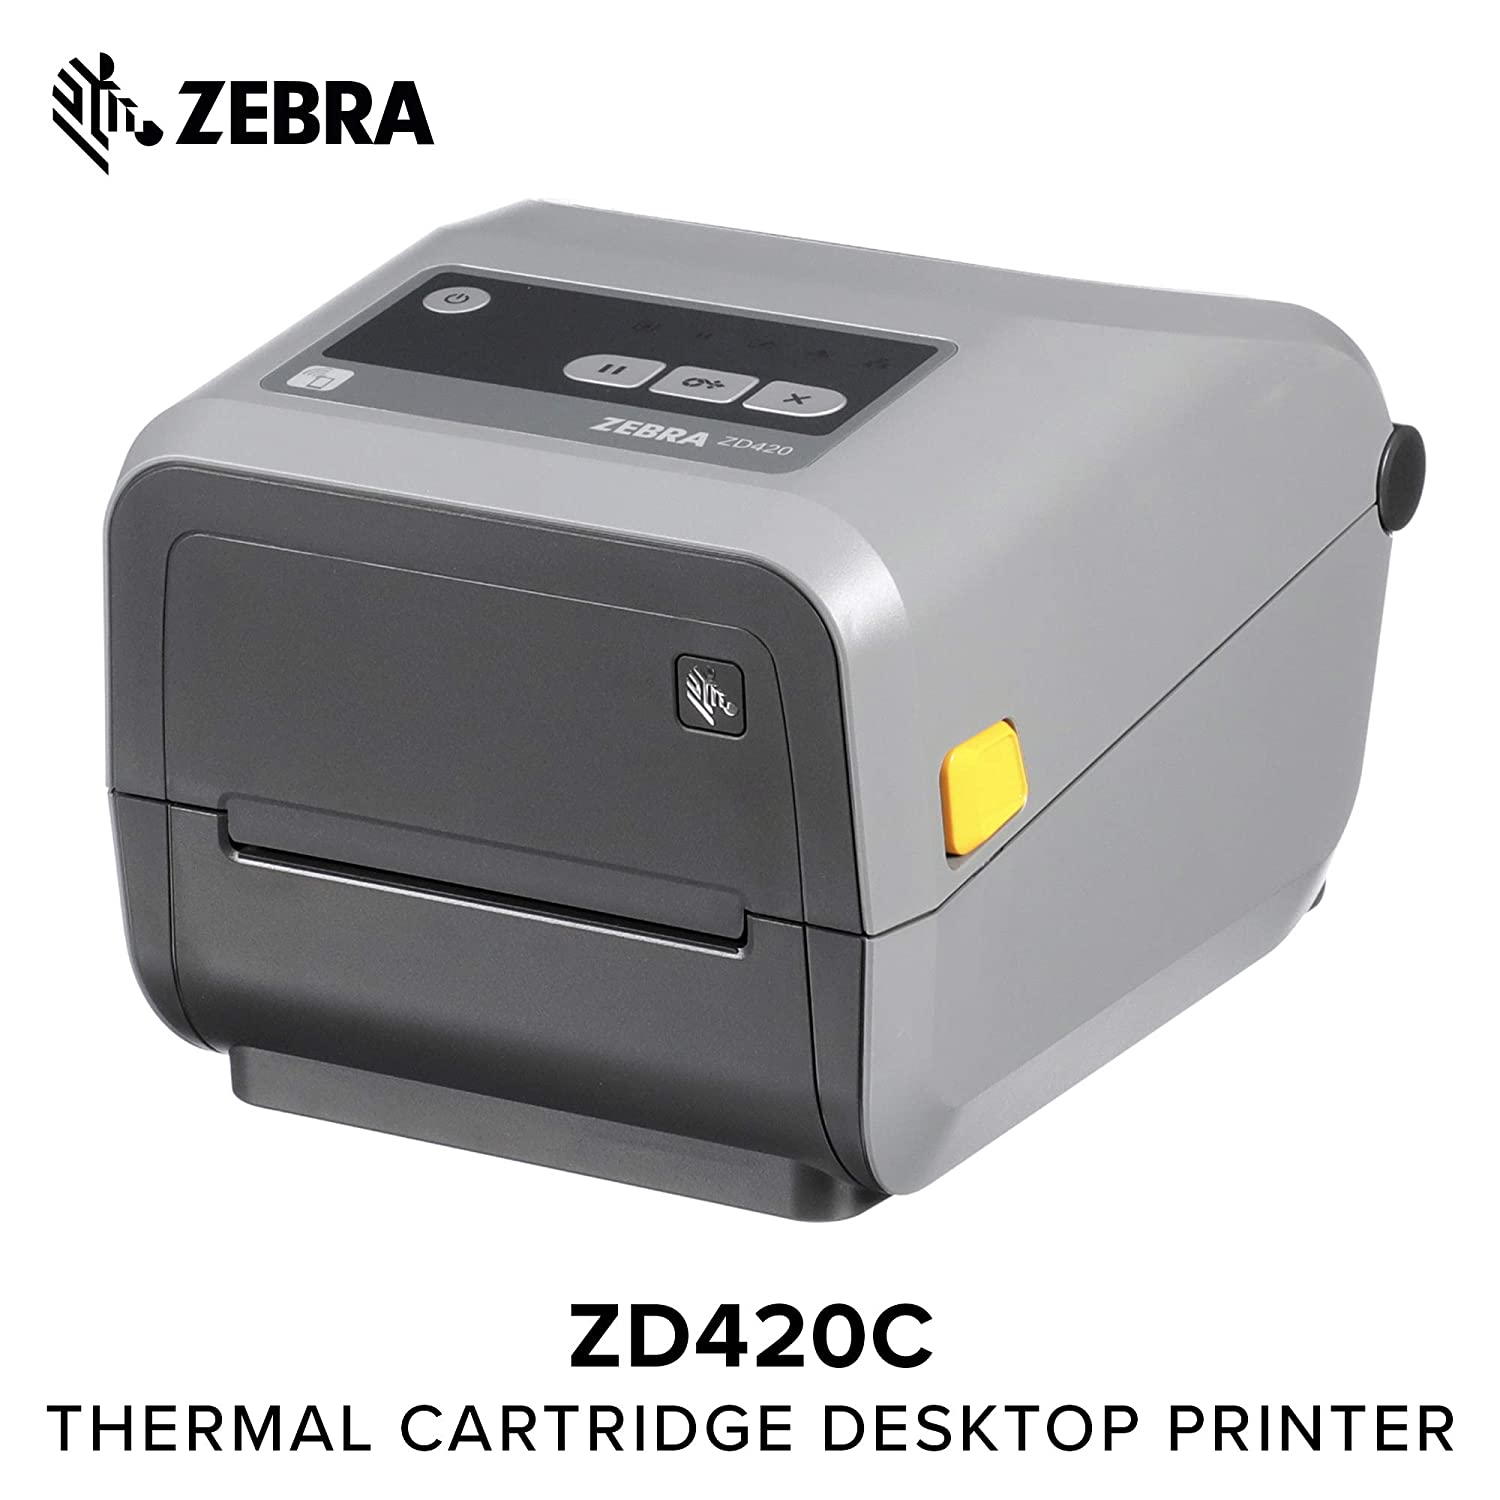 Zebra - ZD420c Ribbon Cartridge Desktop Printer for Labels and Barcodes - Print Width 4 in - 300 dpi - Interface: Bluetooth LE, USB - ZD42043-C01M00EZ